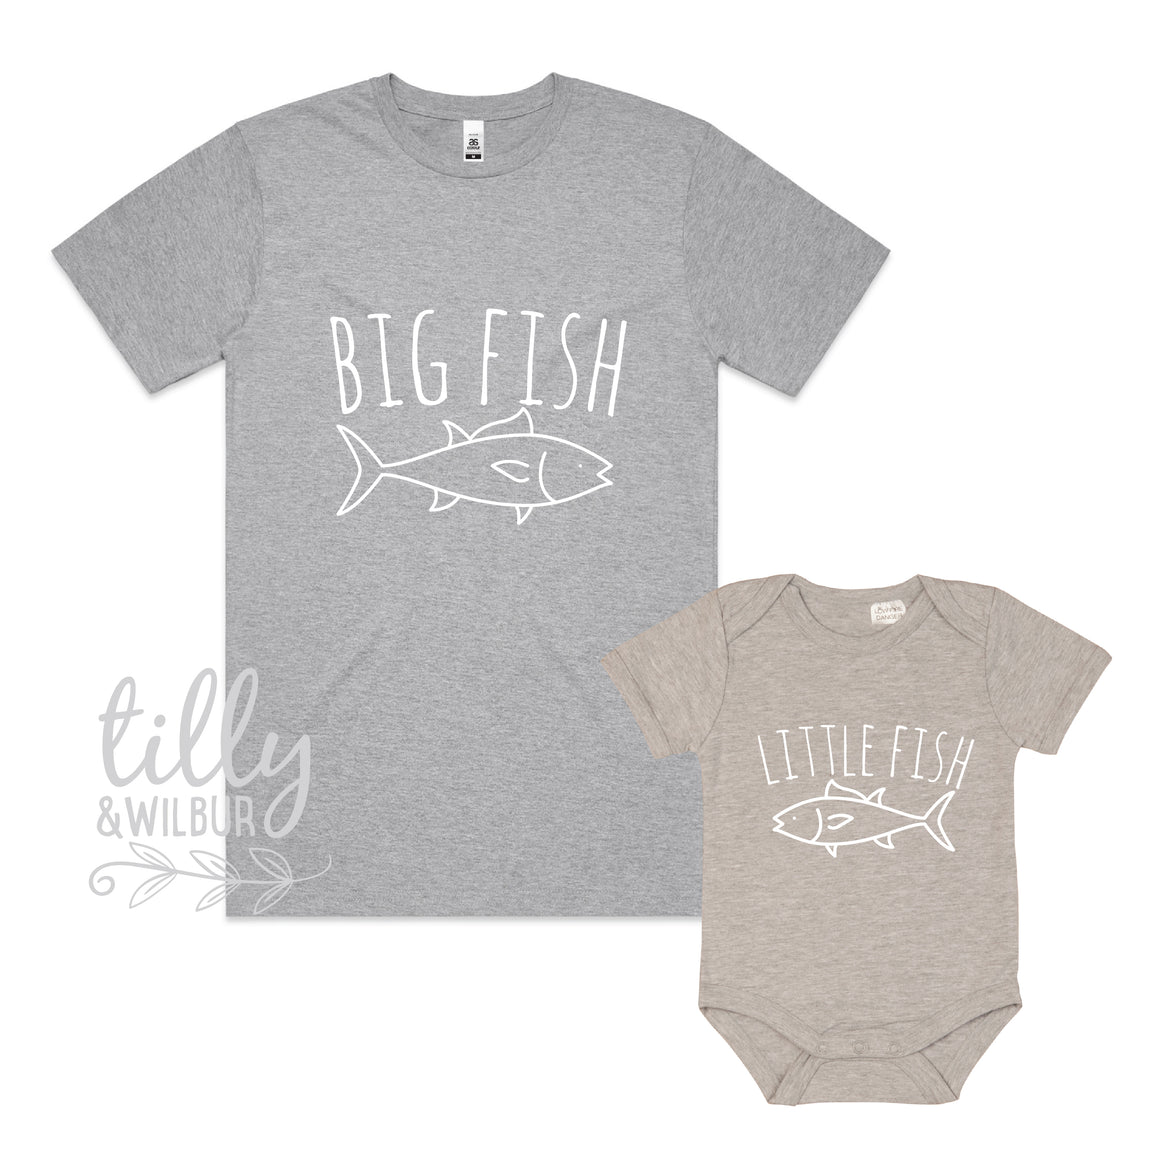 Big Fish Little Fish Father Son Matching Shirts